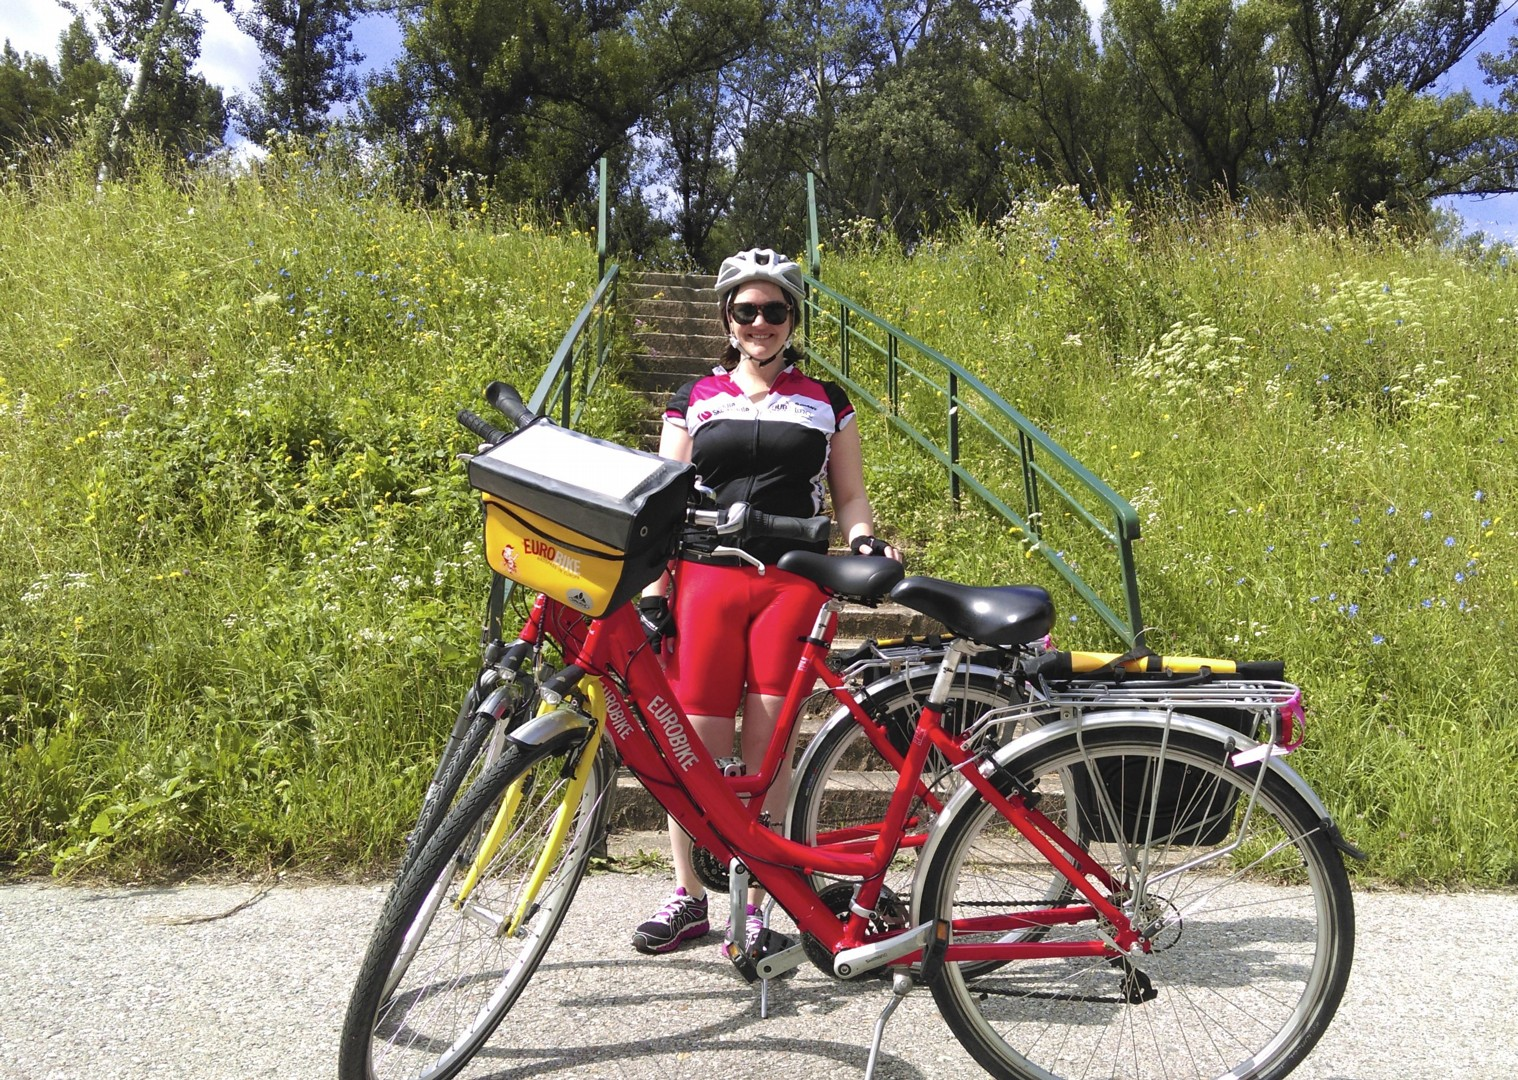 leisure-cycling-holiday-danube.jpg - Austria, Slovakia and Hungary - Vienna to Budapest - Self-Guided Family Cycling Holiday - Family Cycling